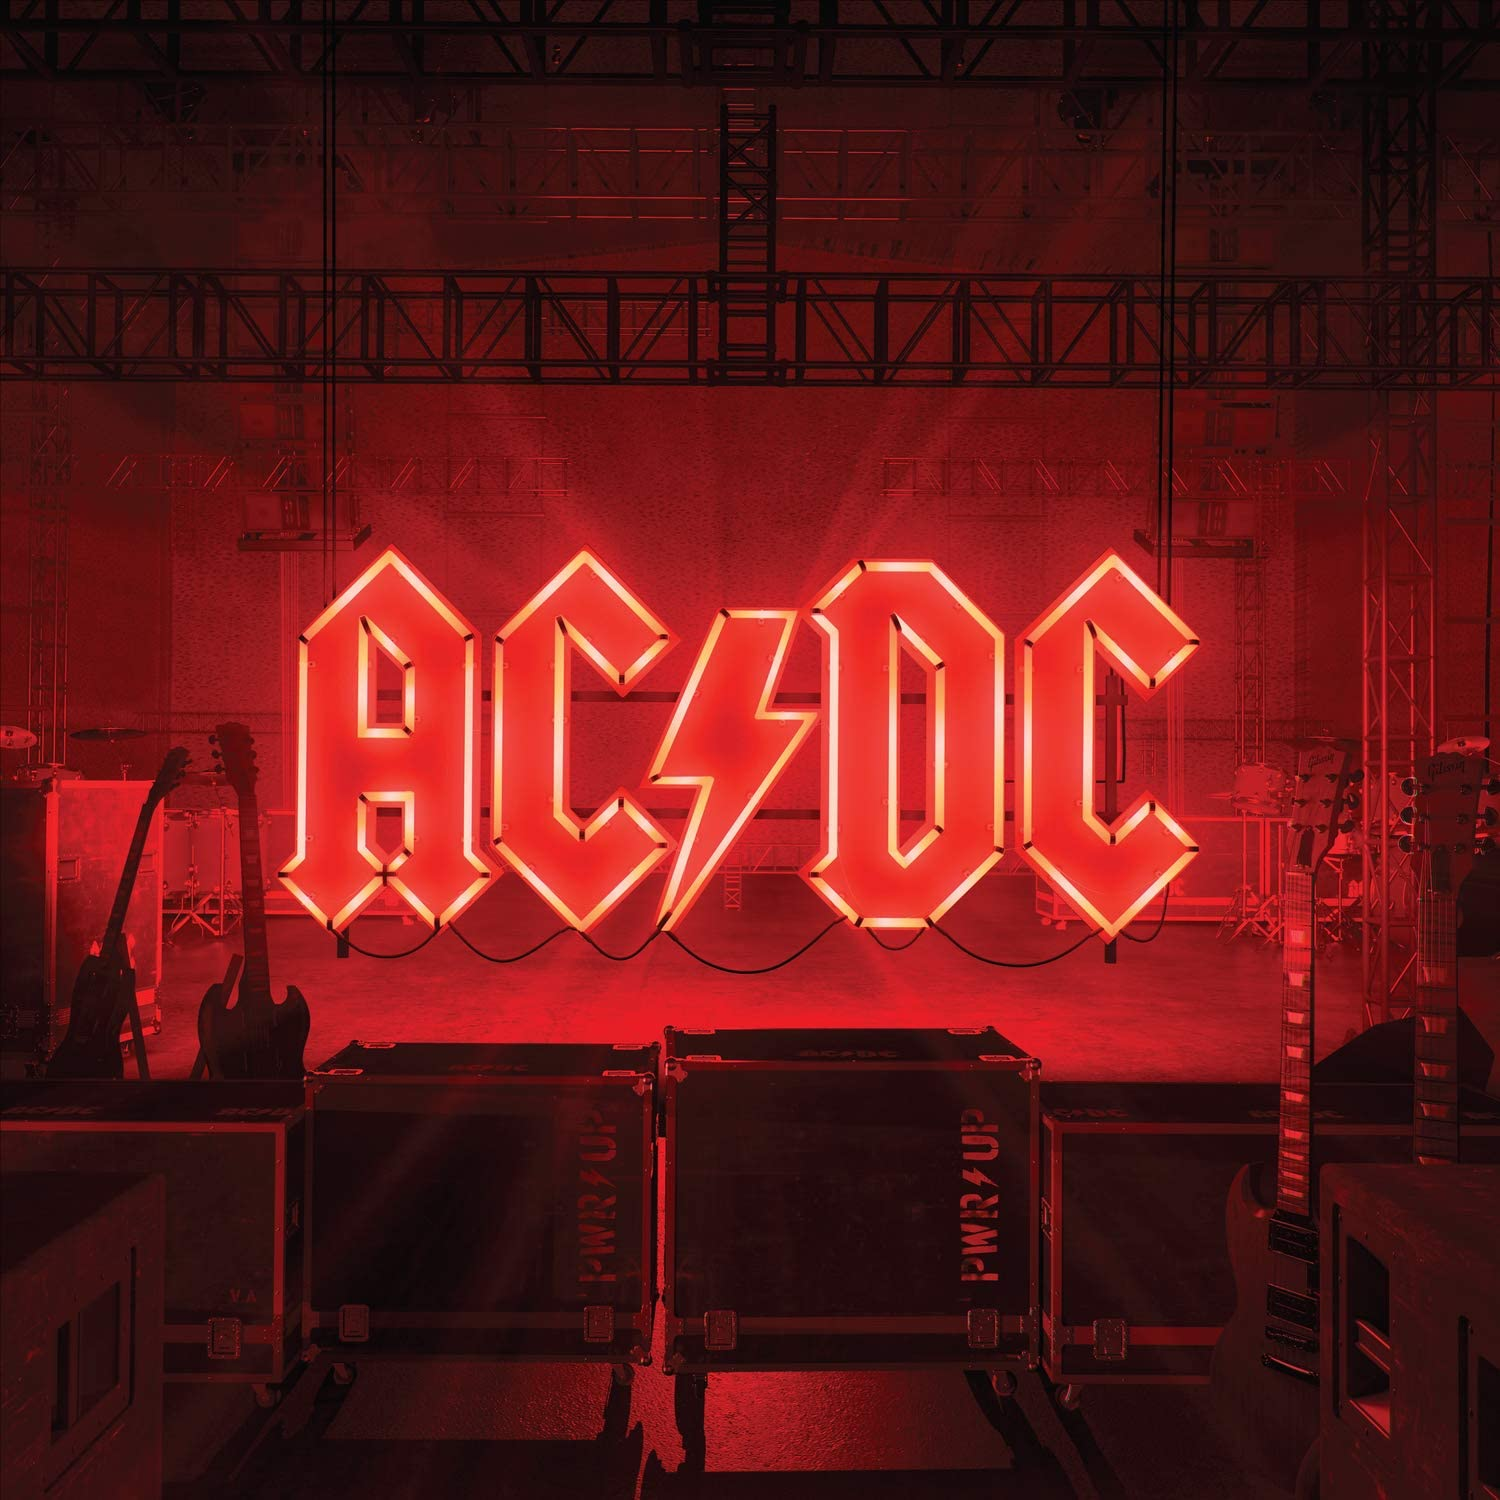 Copertina Vinile 33 giri Power Up di AC/DC